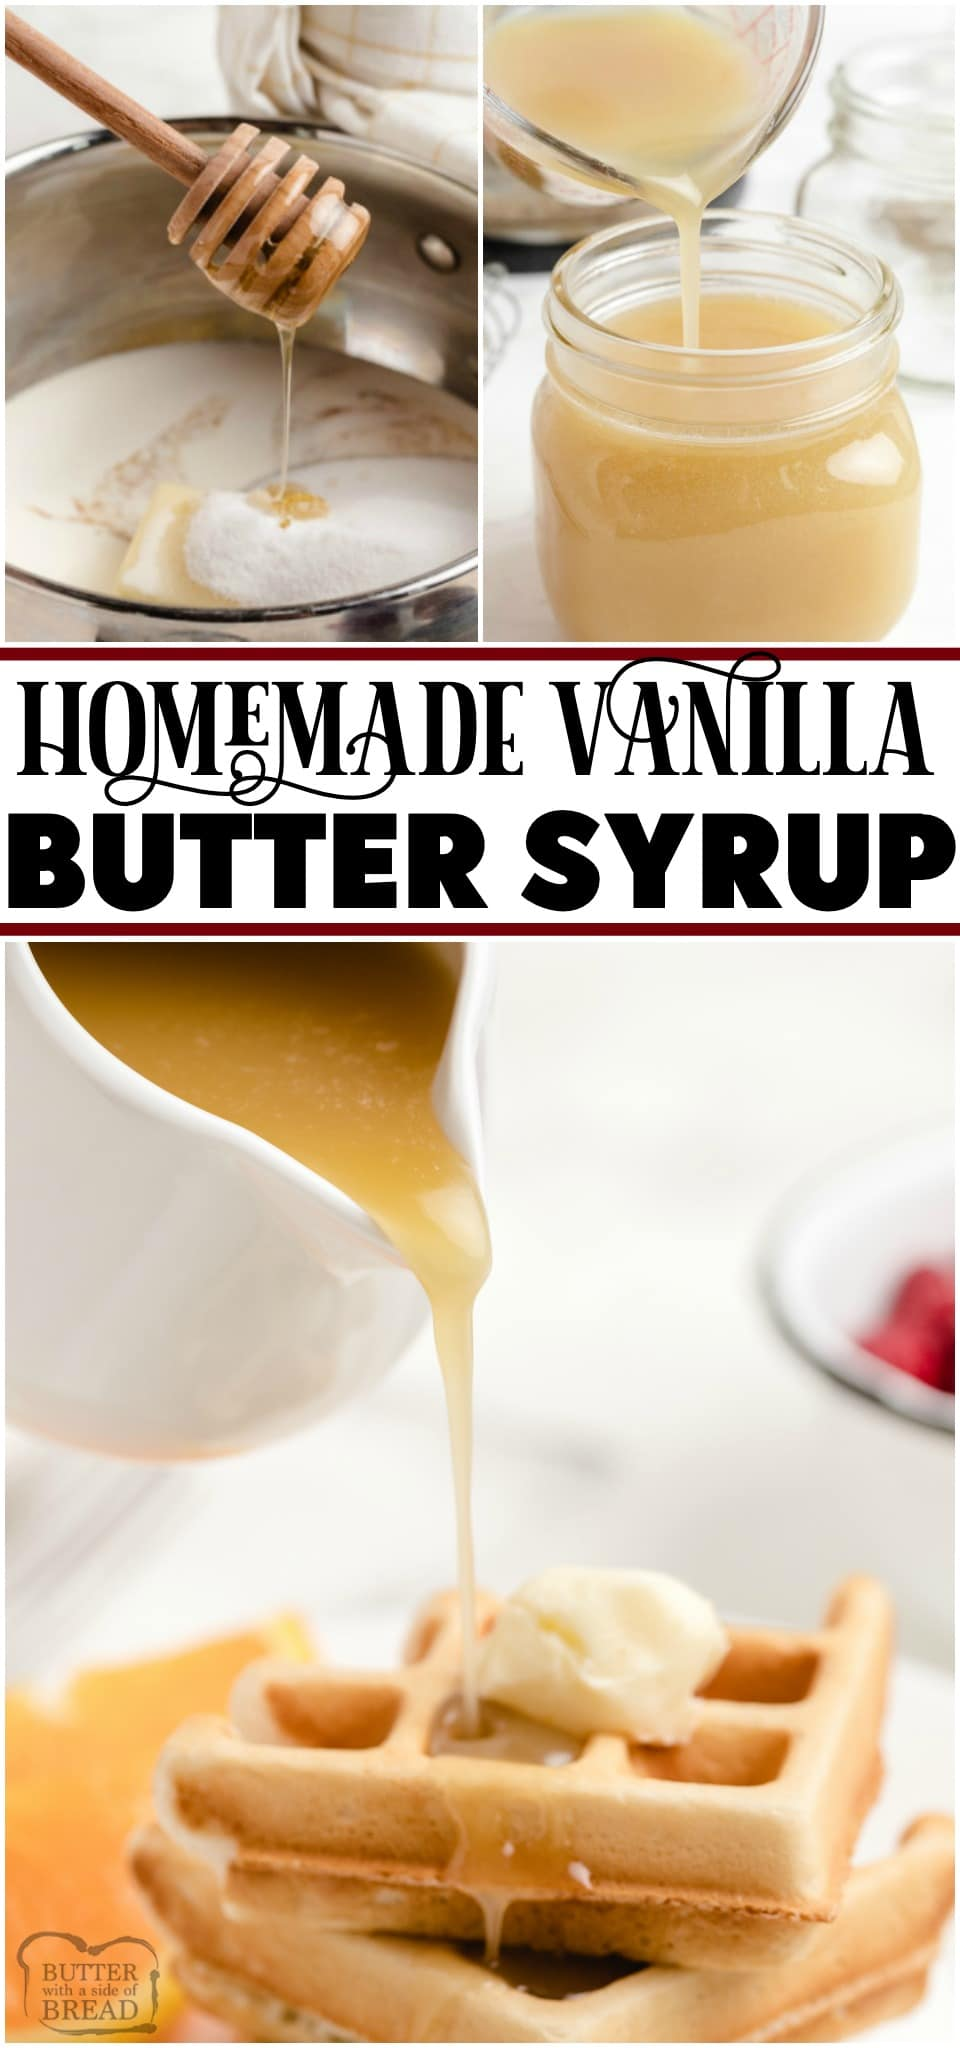 Vanilla Butter Syrup is better than anything store-bought! Homemade Syrup recipe made with butter, brown sugar, half & half, honey and vanilla extract. Easy to make syrup with fantastic buttery flavor!